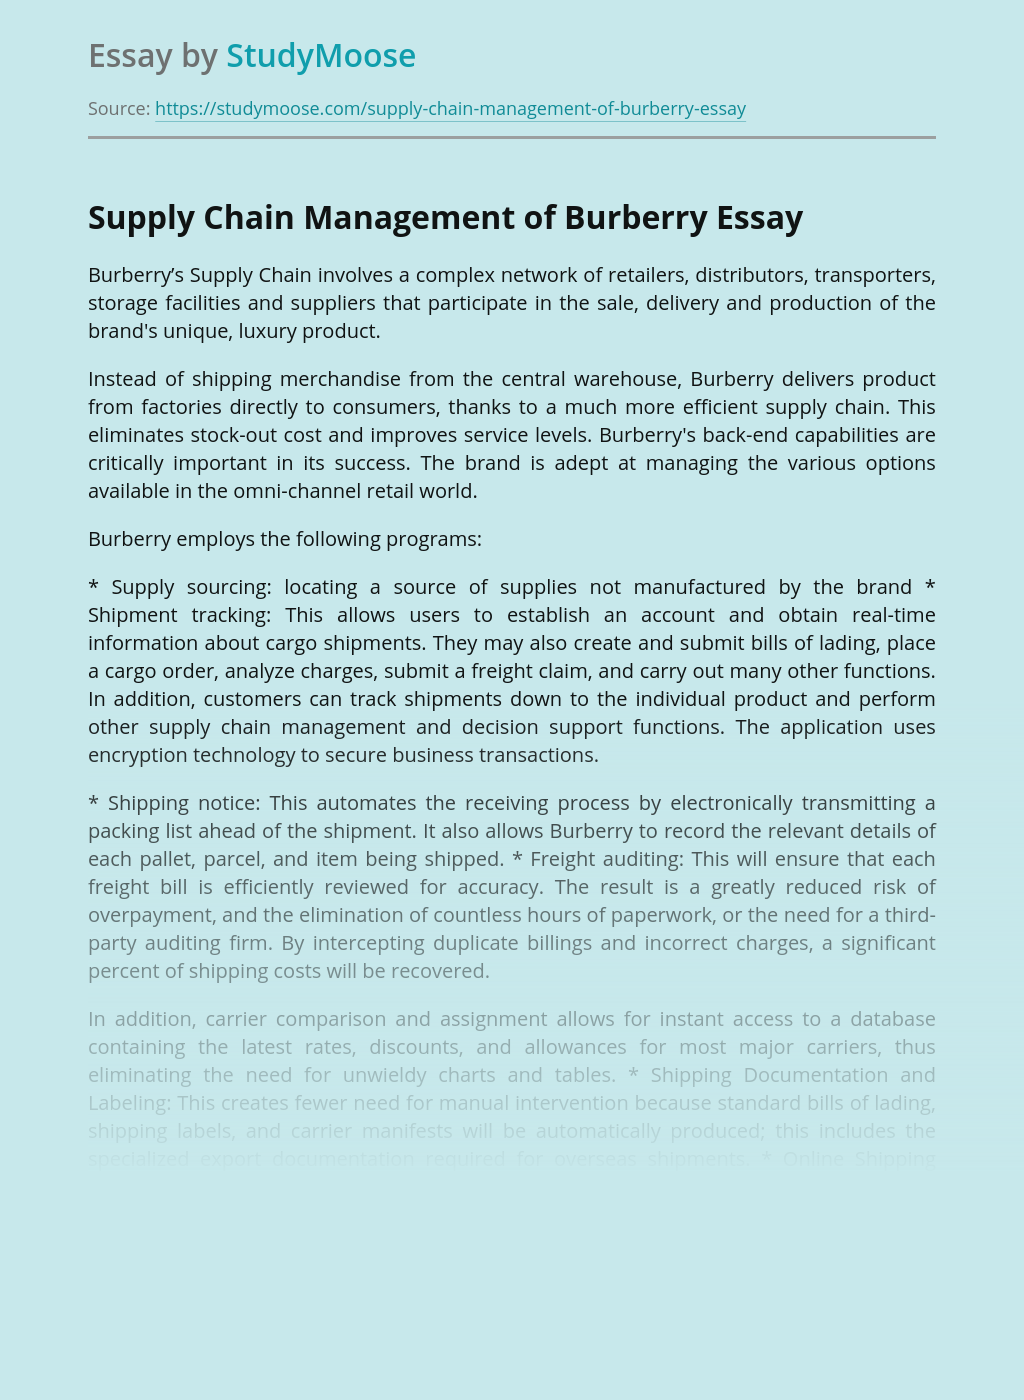 Supply Chain Management of Burberry